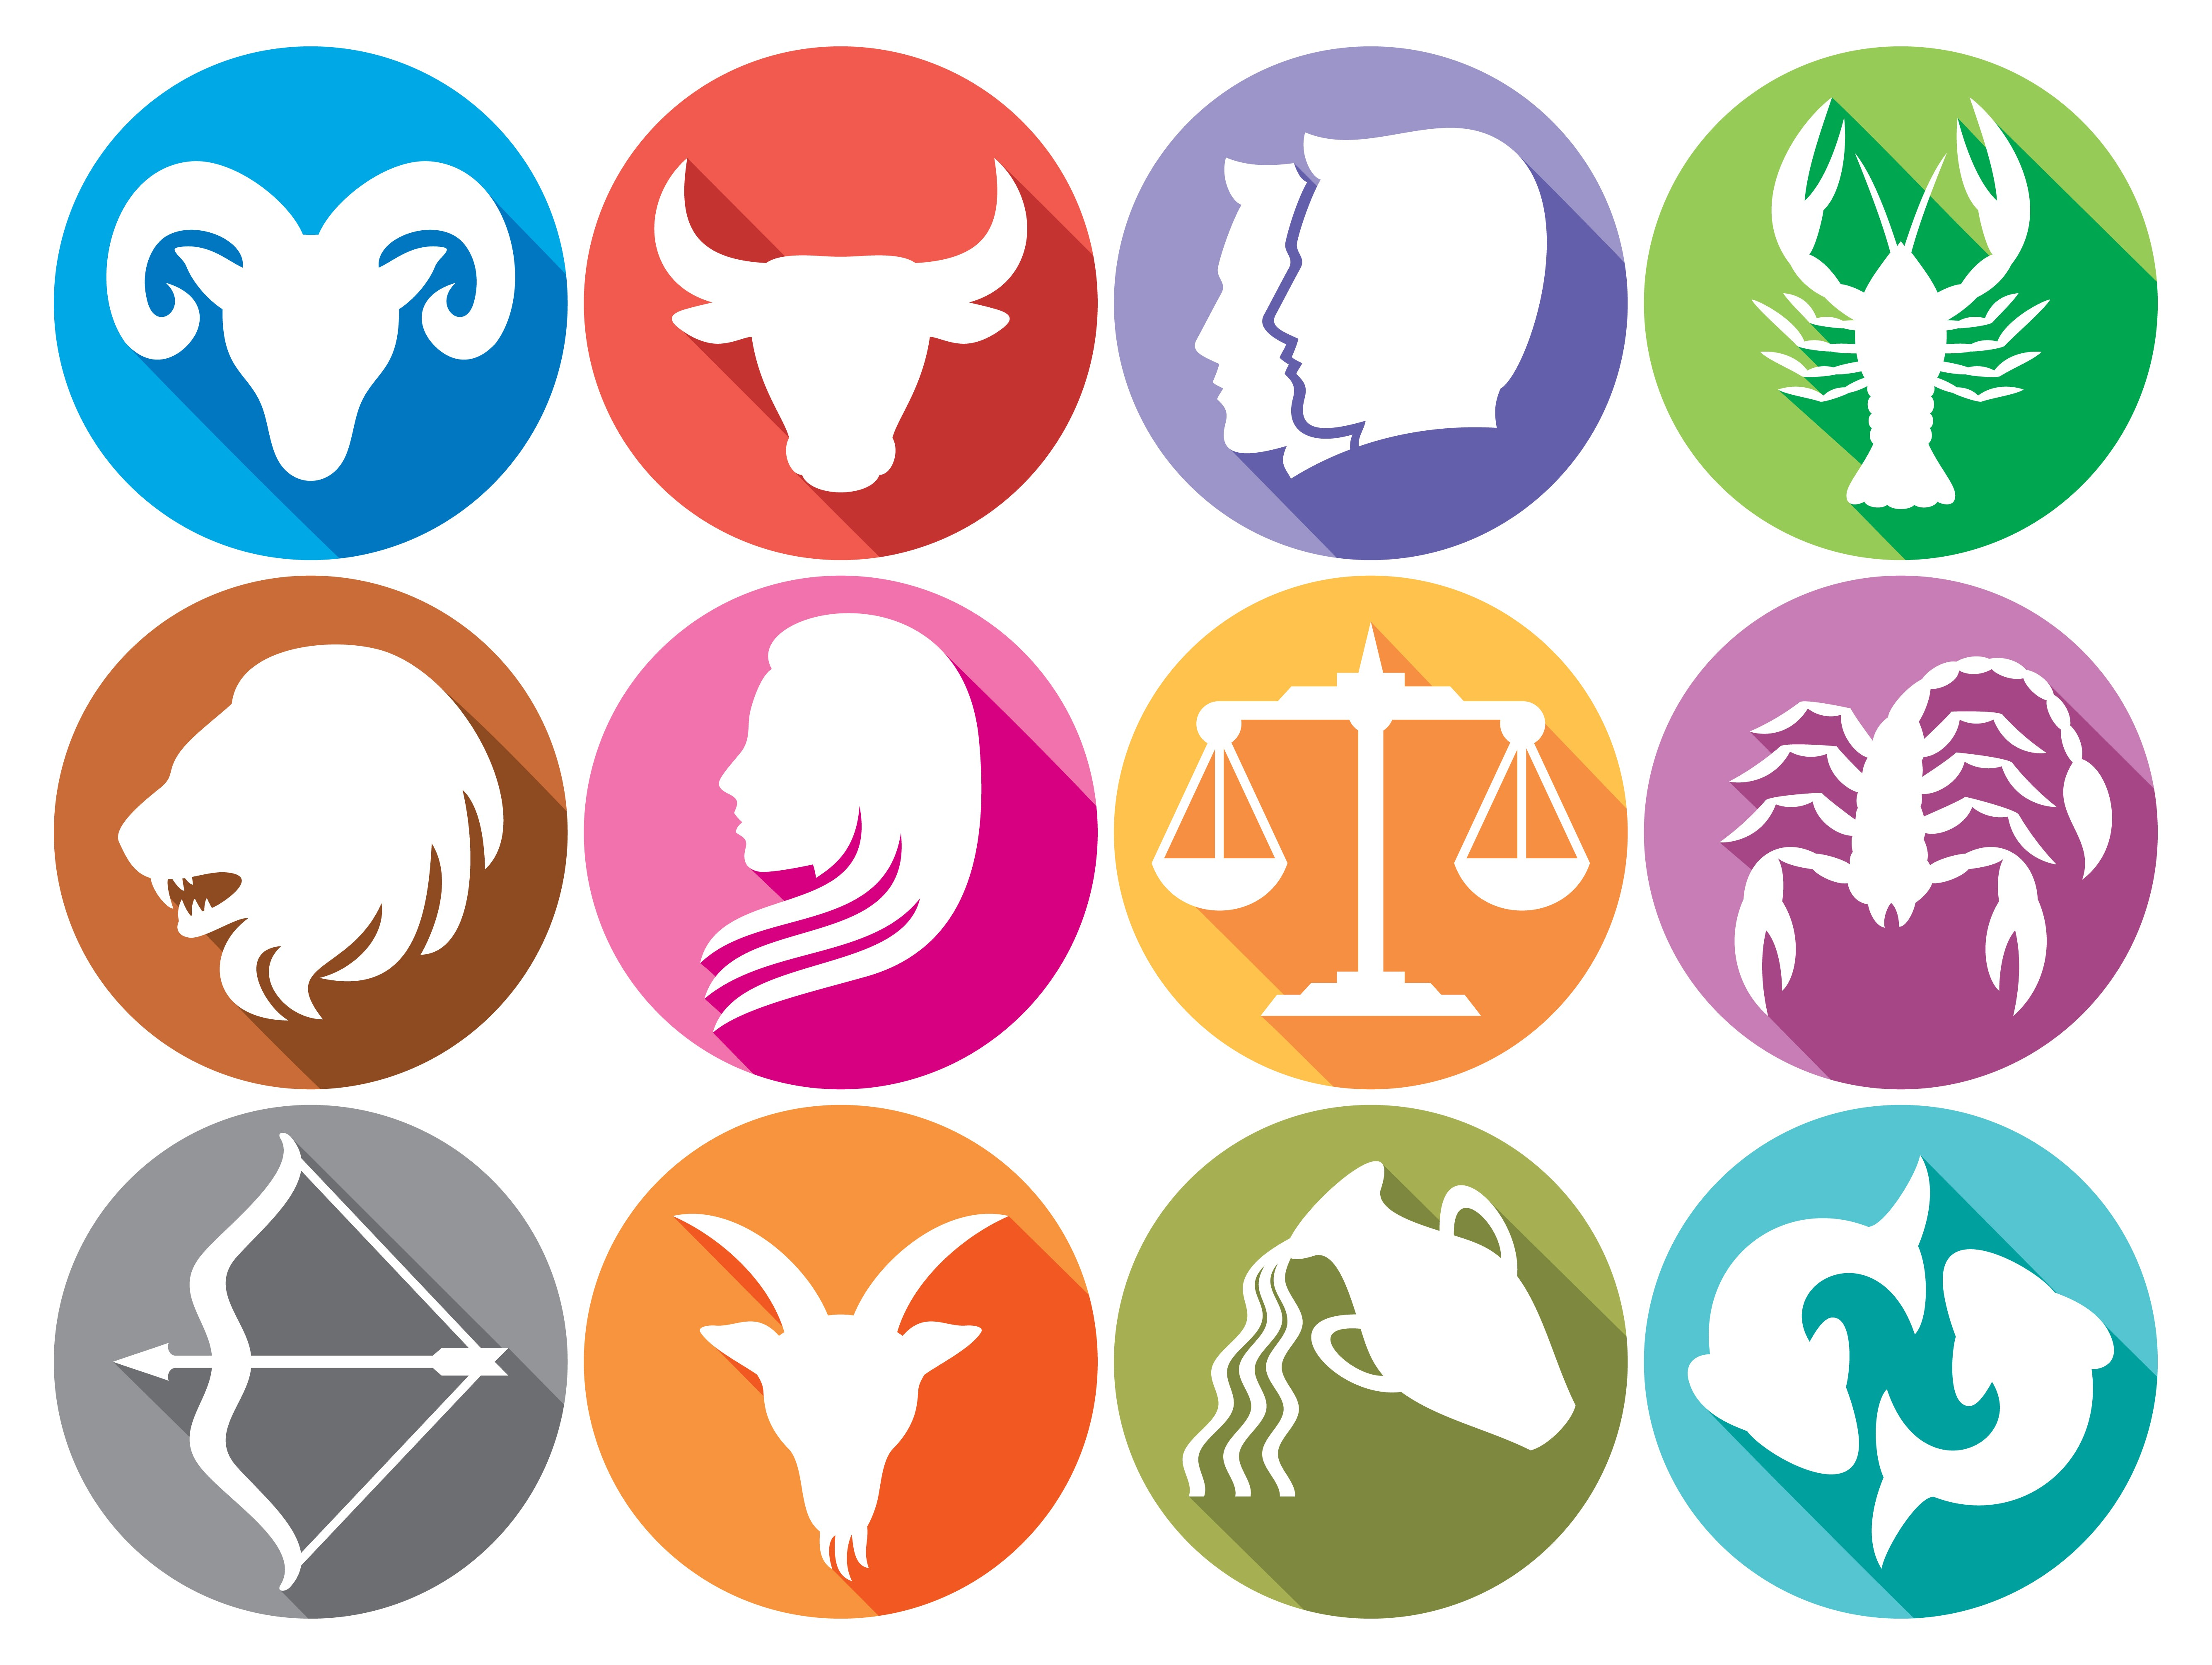 May 4 Horoscopes Gallery. Real Estate Signs Of Stroke. Odd Signs Of Stroke. Bull Signs Of Stroke. Geek Signs Of Stroke. Laser Beam Signs. Father Signs Of Stroke. Star Wars Church Signs Of Stroke. Plus Signs Of Stroke